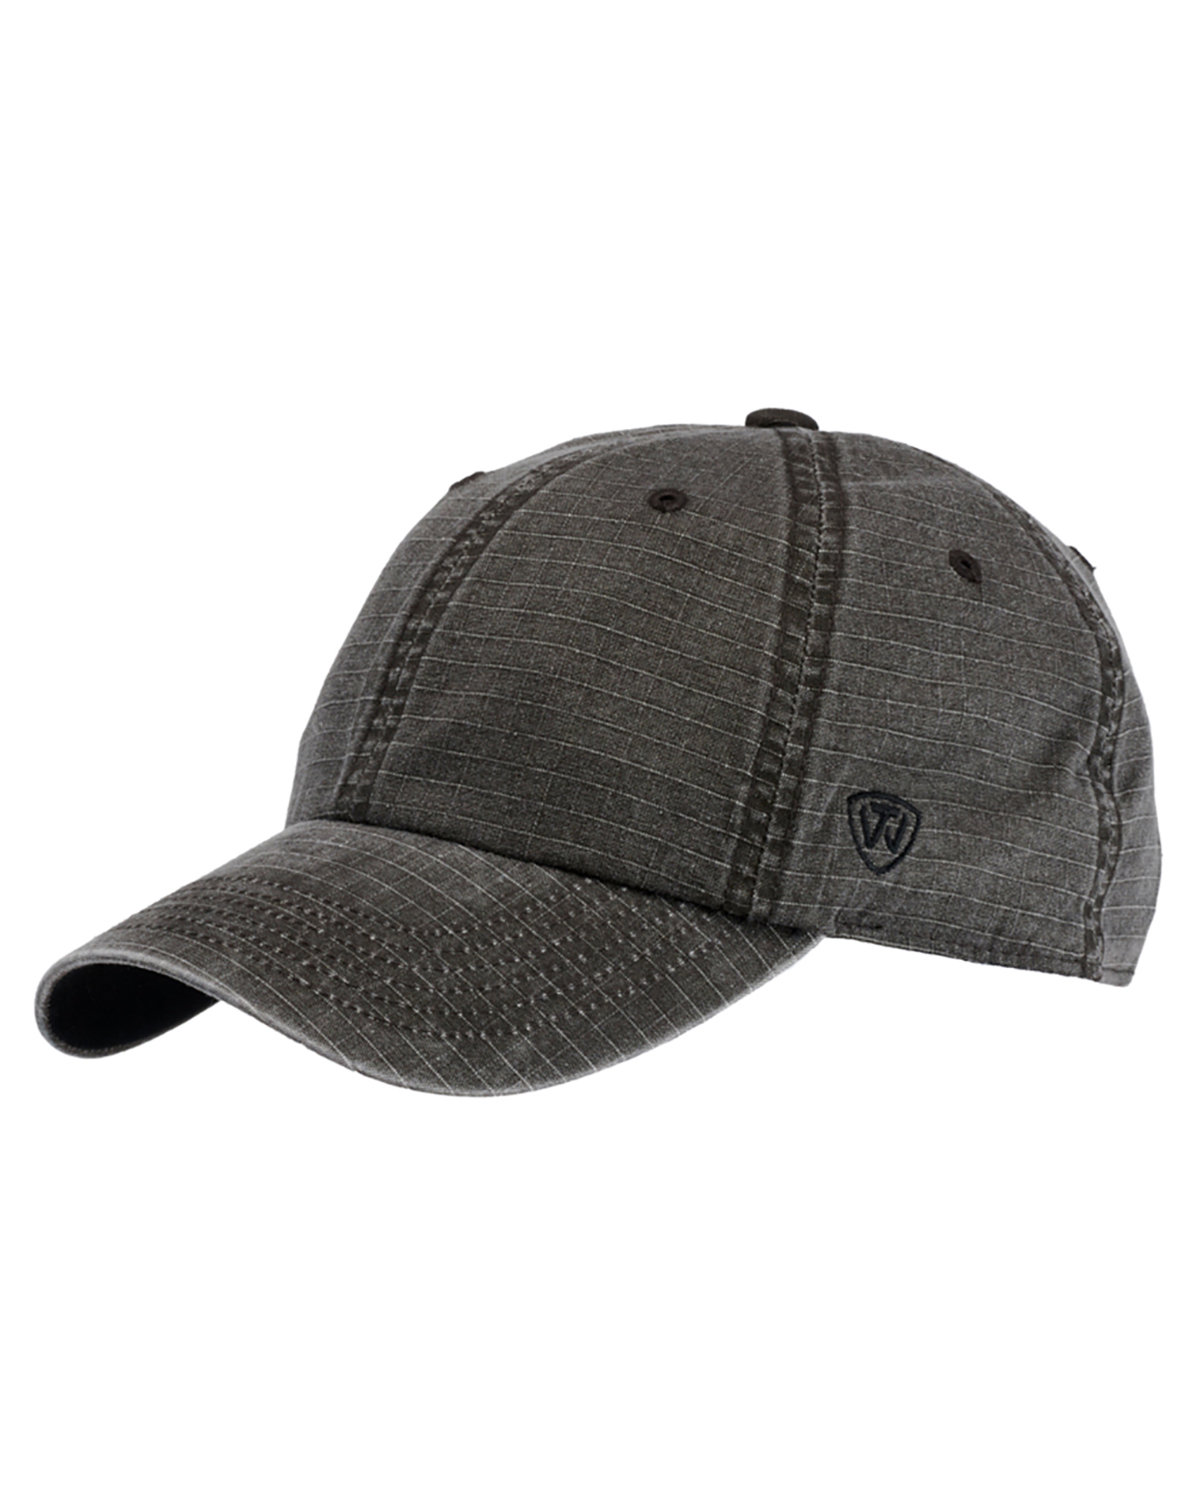 Top Of The World Ripper Washed Cotton Ripstop Hat BLACK